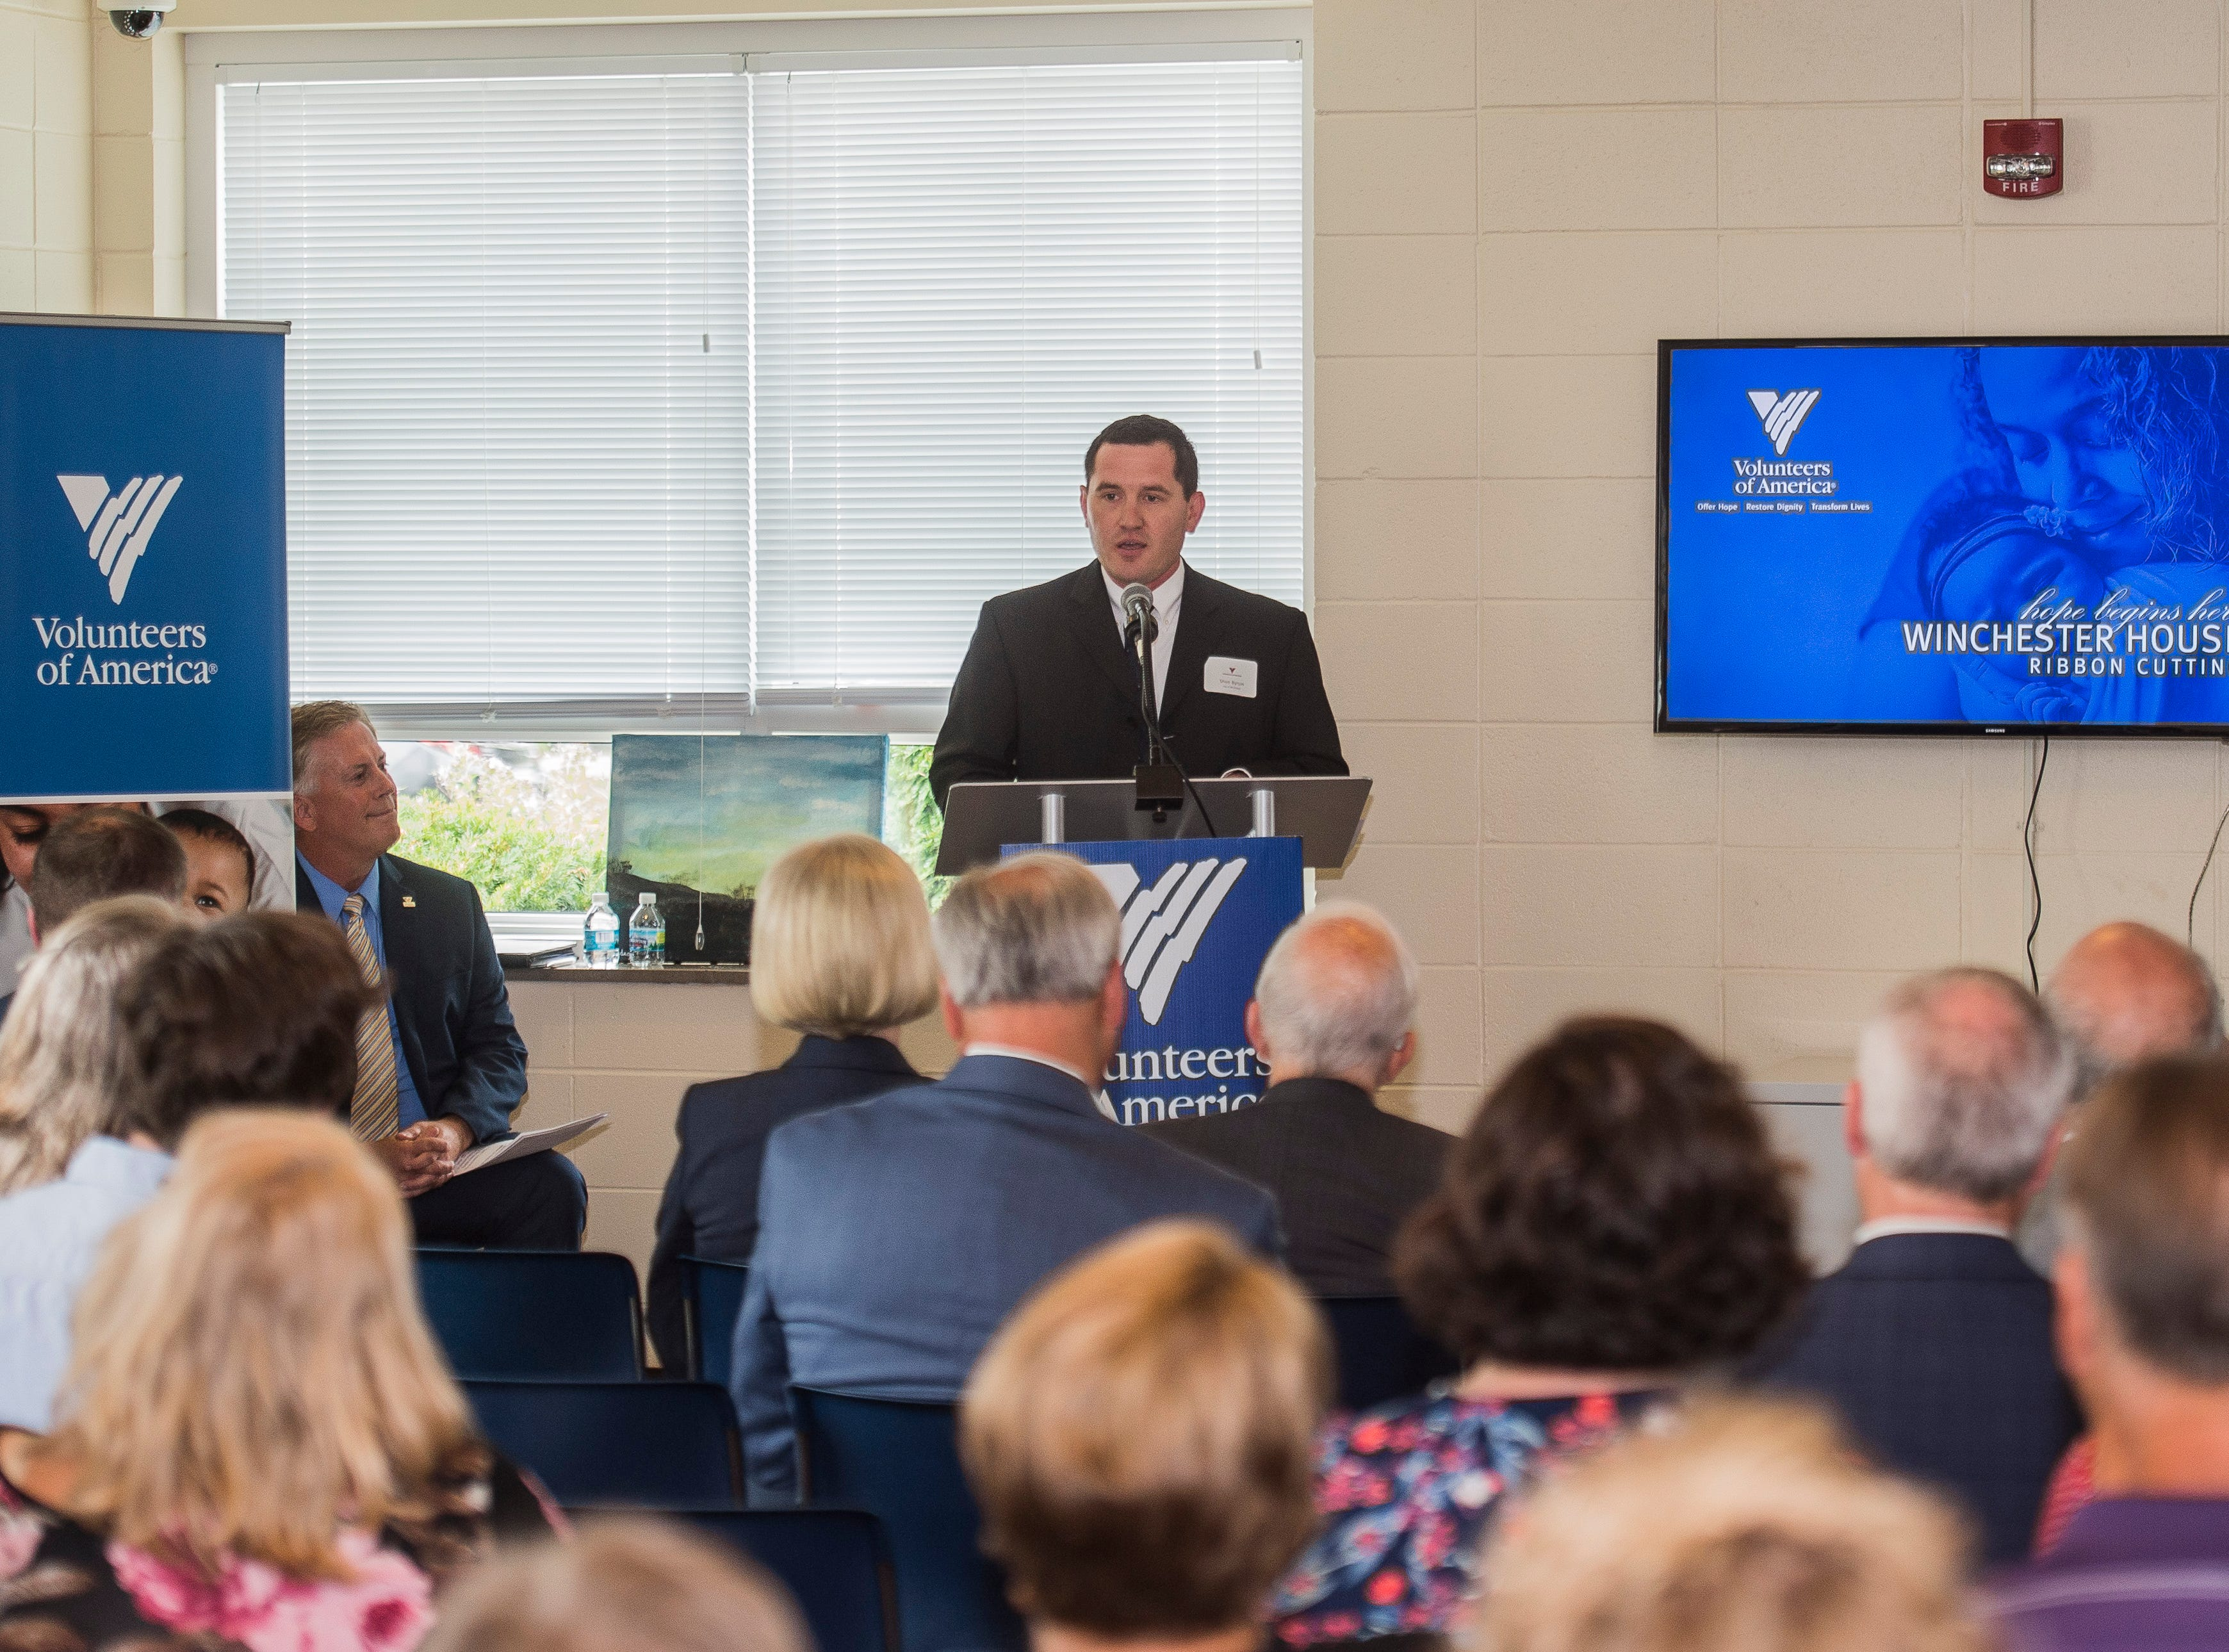 Winchester Mayor Shon Byrum speaks during a news conference celebrating the opening of the Winchester House, a new drug treatment facility for women, in Winchester, Ind., on Wednesday, Aug. 1, 2018.